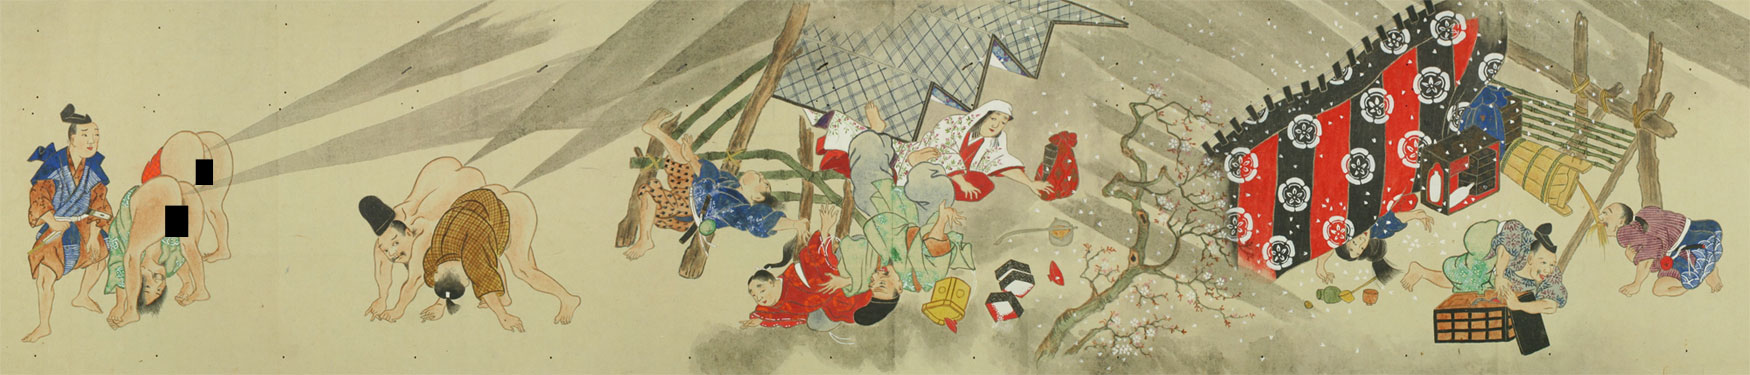 Scroll depicting a massive Japanese fart battle